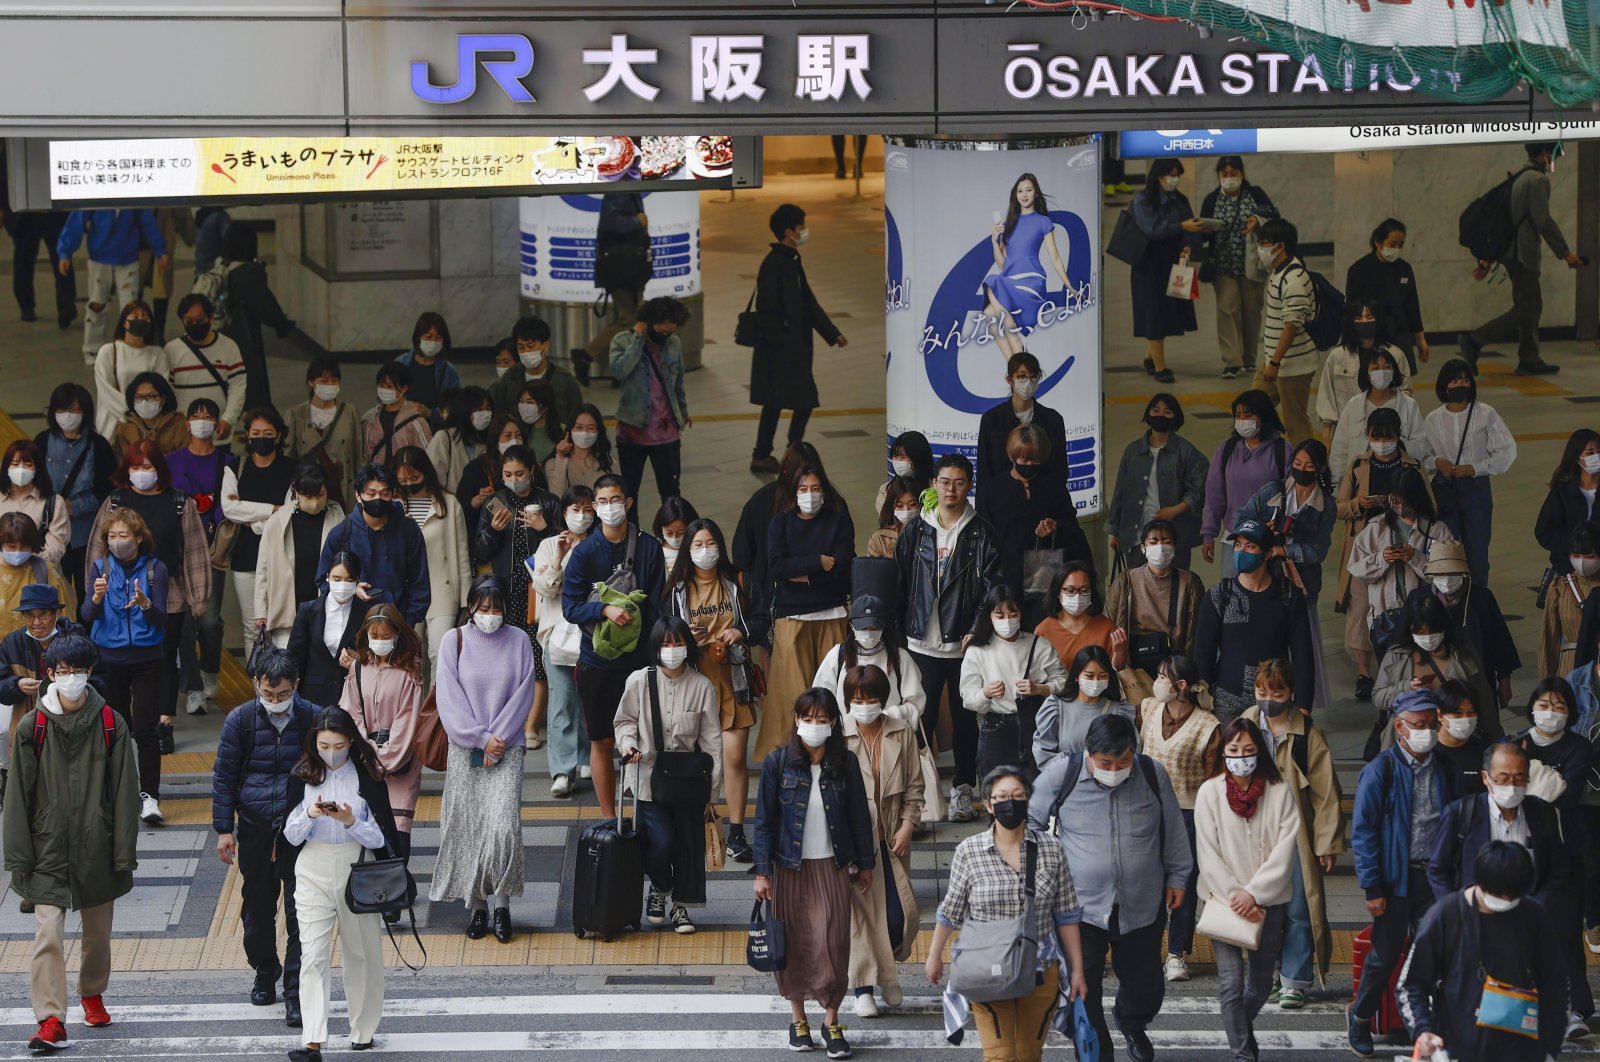 People wear face masks as they make their way in Osaka, western Japan, Wednesday, March 31, 2021. (AP Photo)